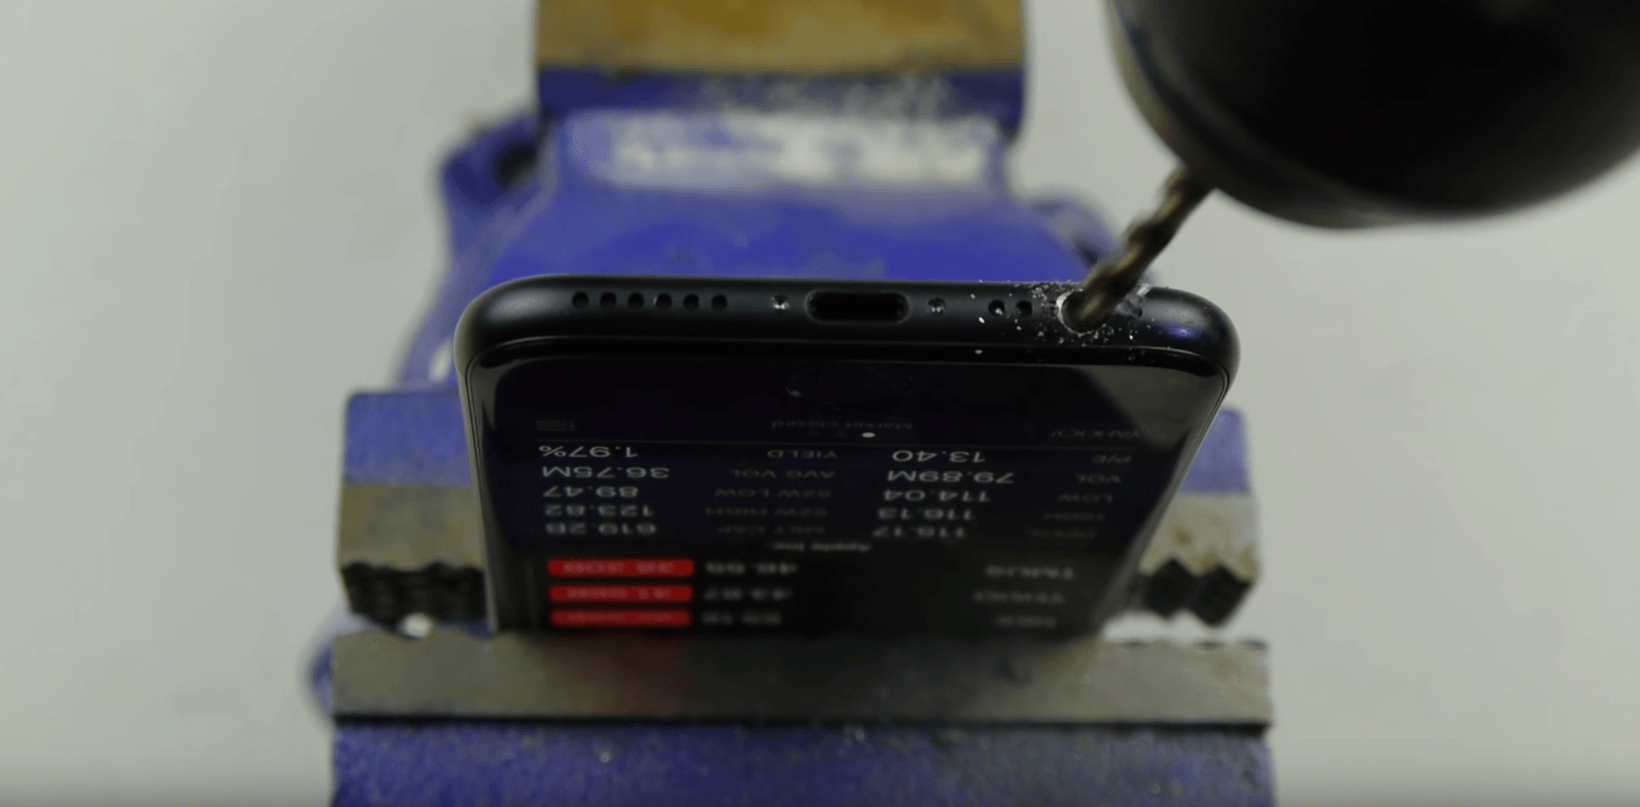 Clueless technophiles are destroying their iPhone 7's after watching prank video